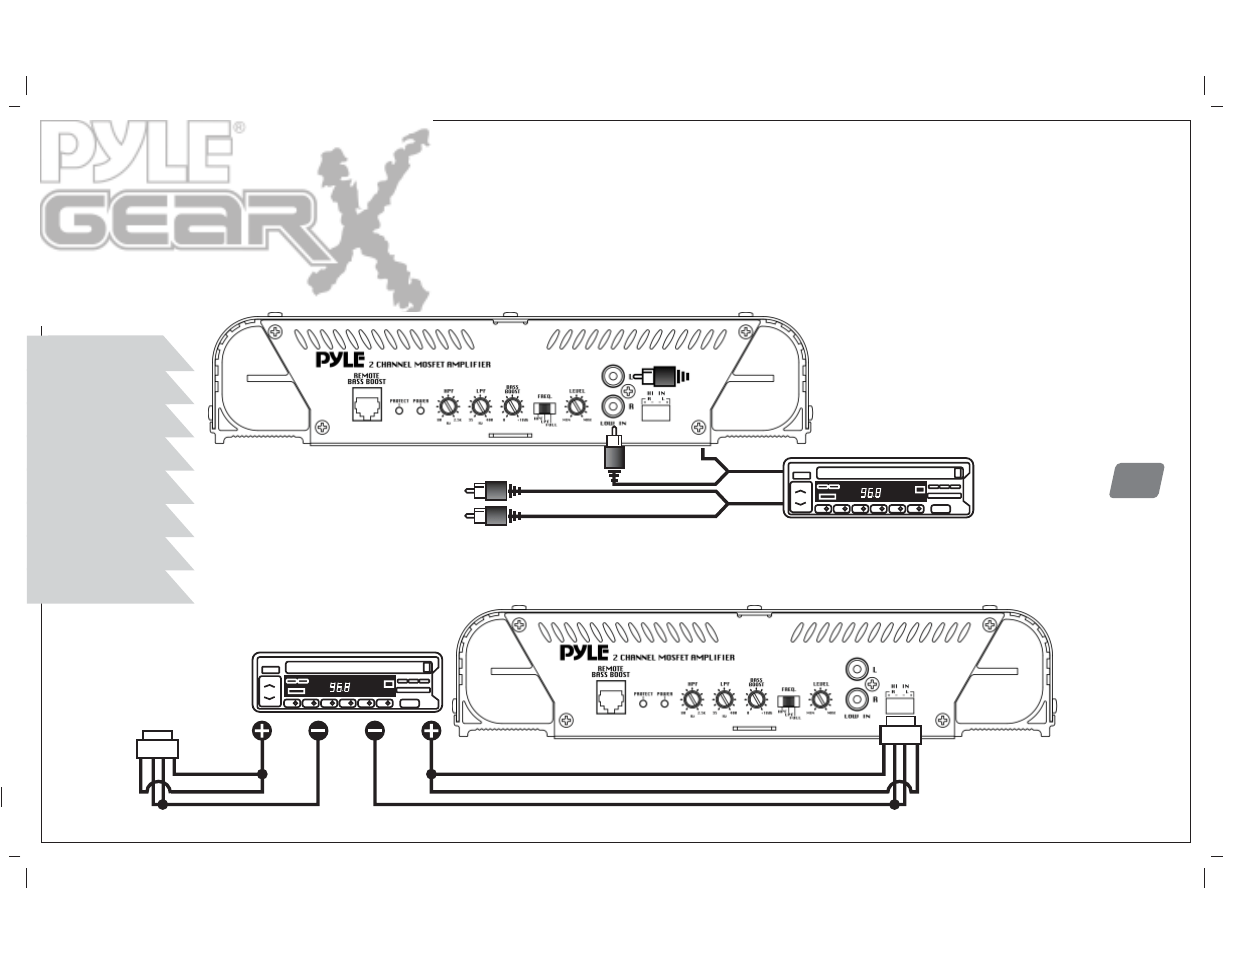 hight resolution of  mono input connections low level inputs high level inputs pyle on visio network amp